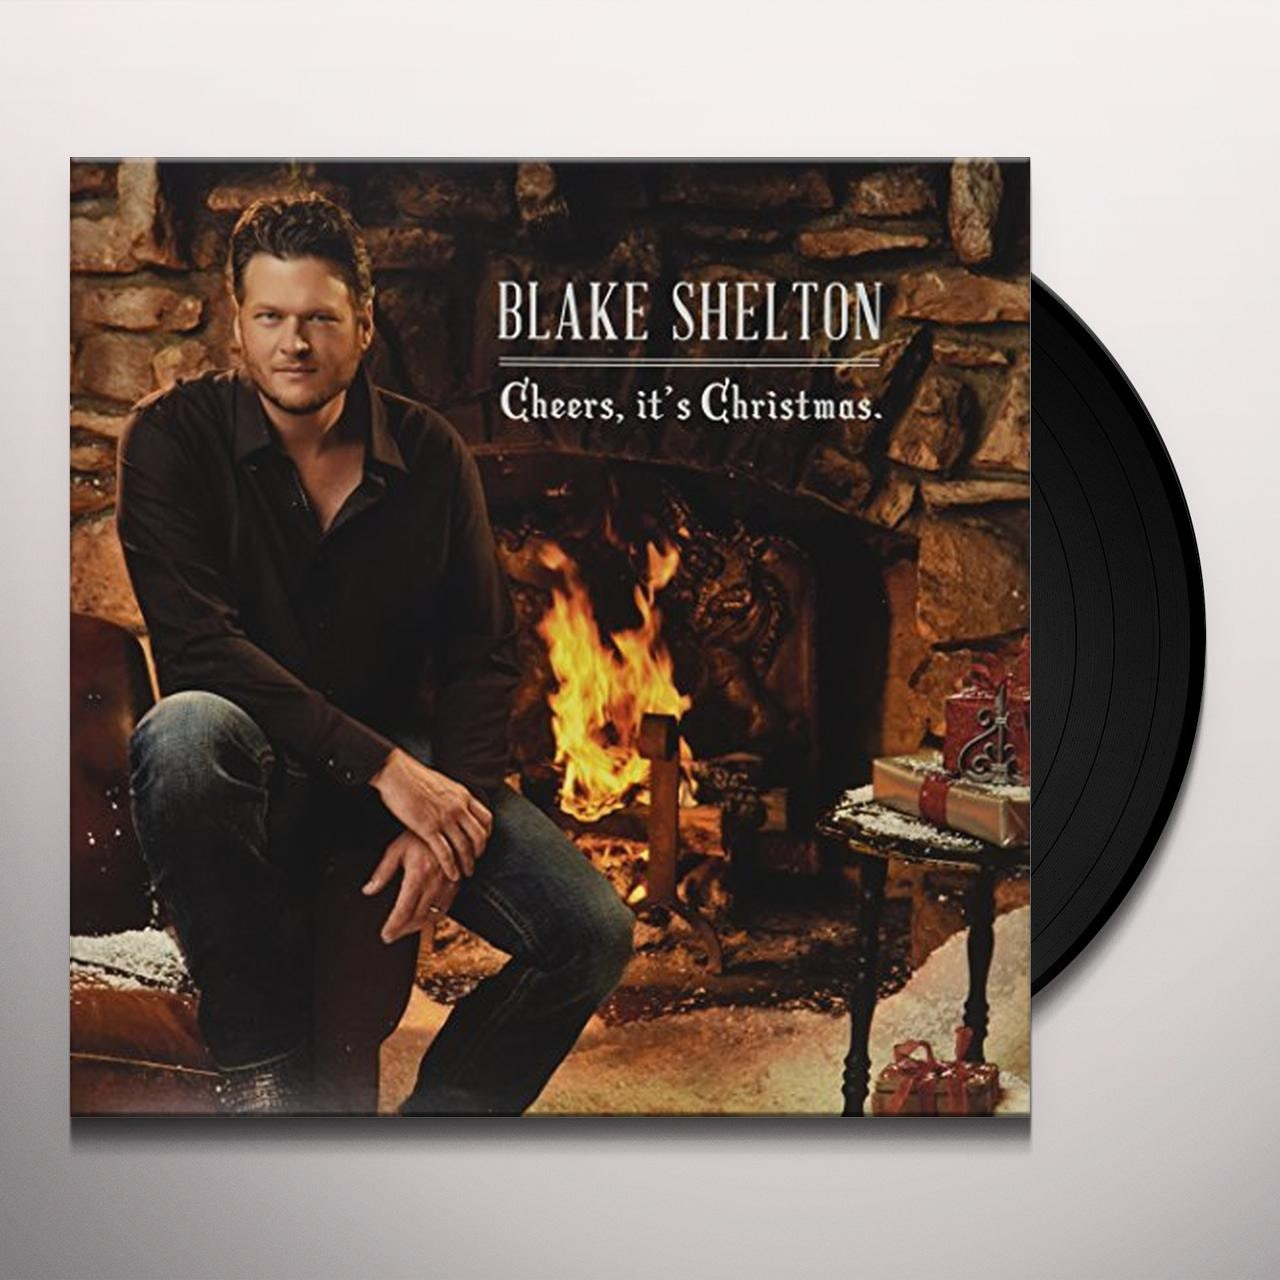 Blake Shelton Cheers Its Christmas.Blake Shelton Cheers It S Christmas Vinyl Record